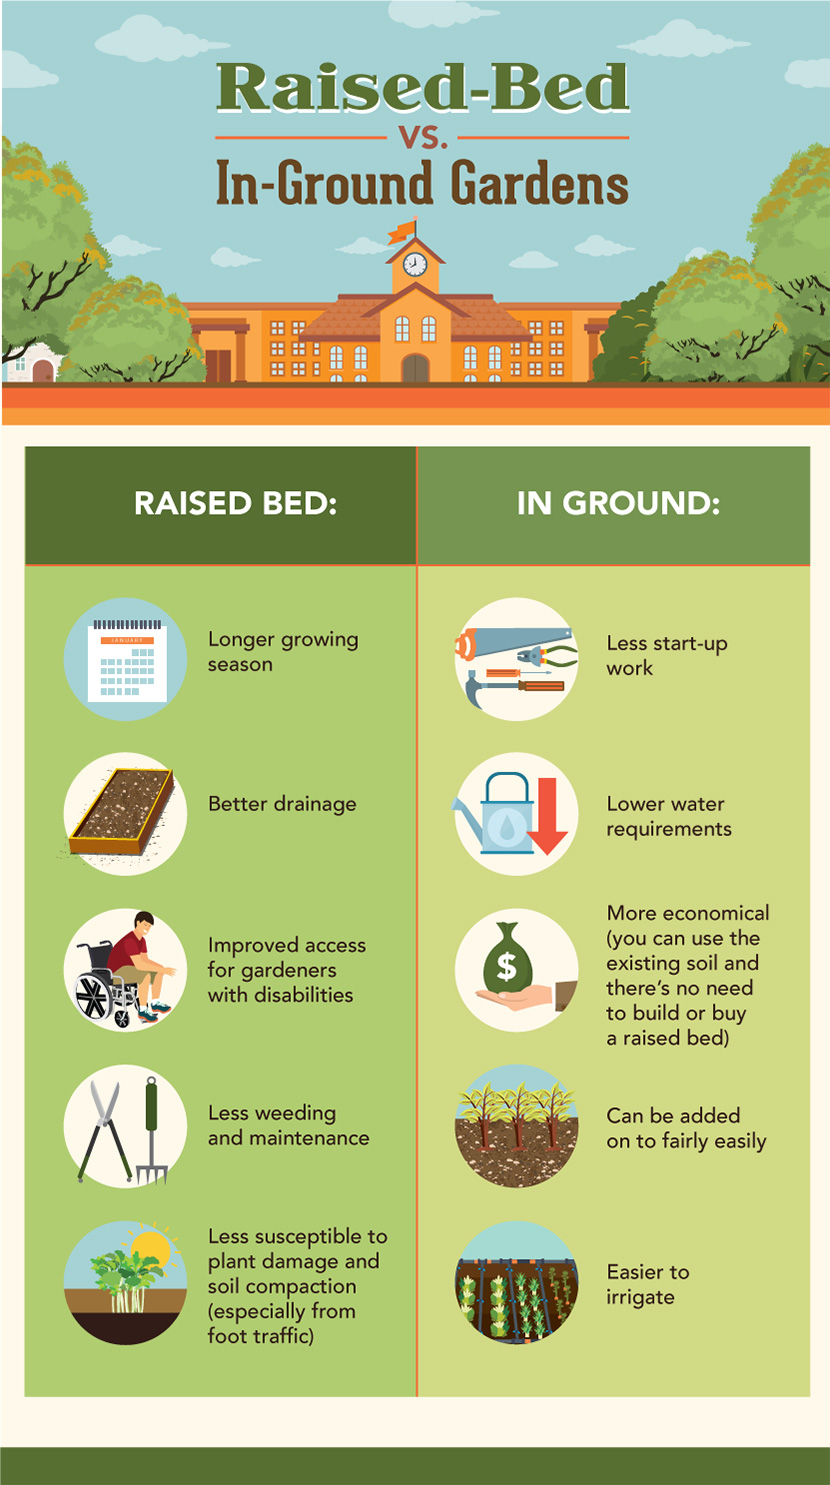 Raised bed gardens vs ground gardens